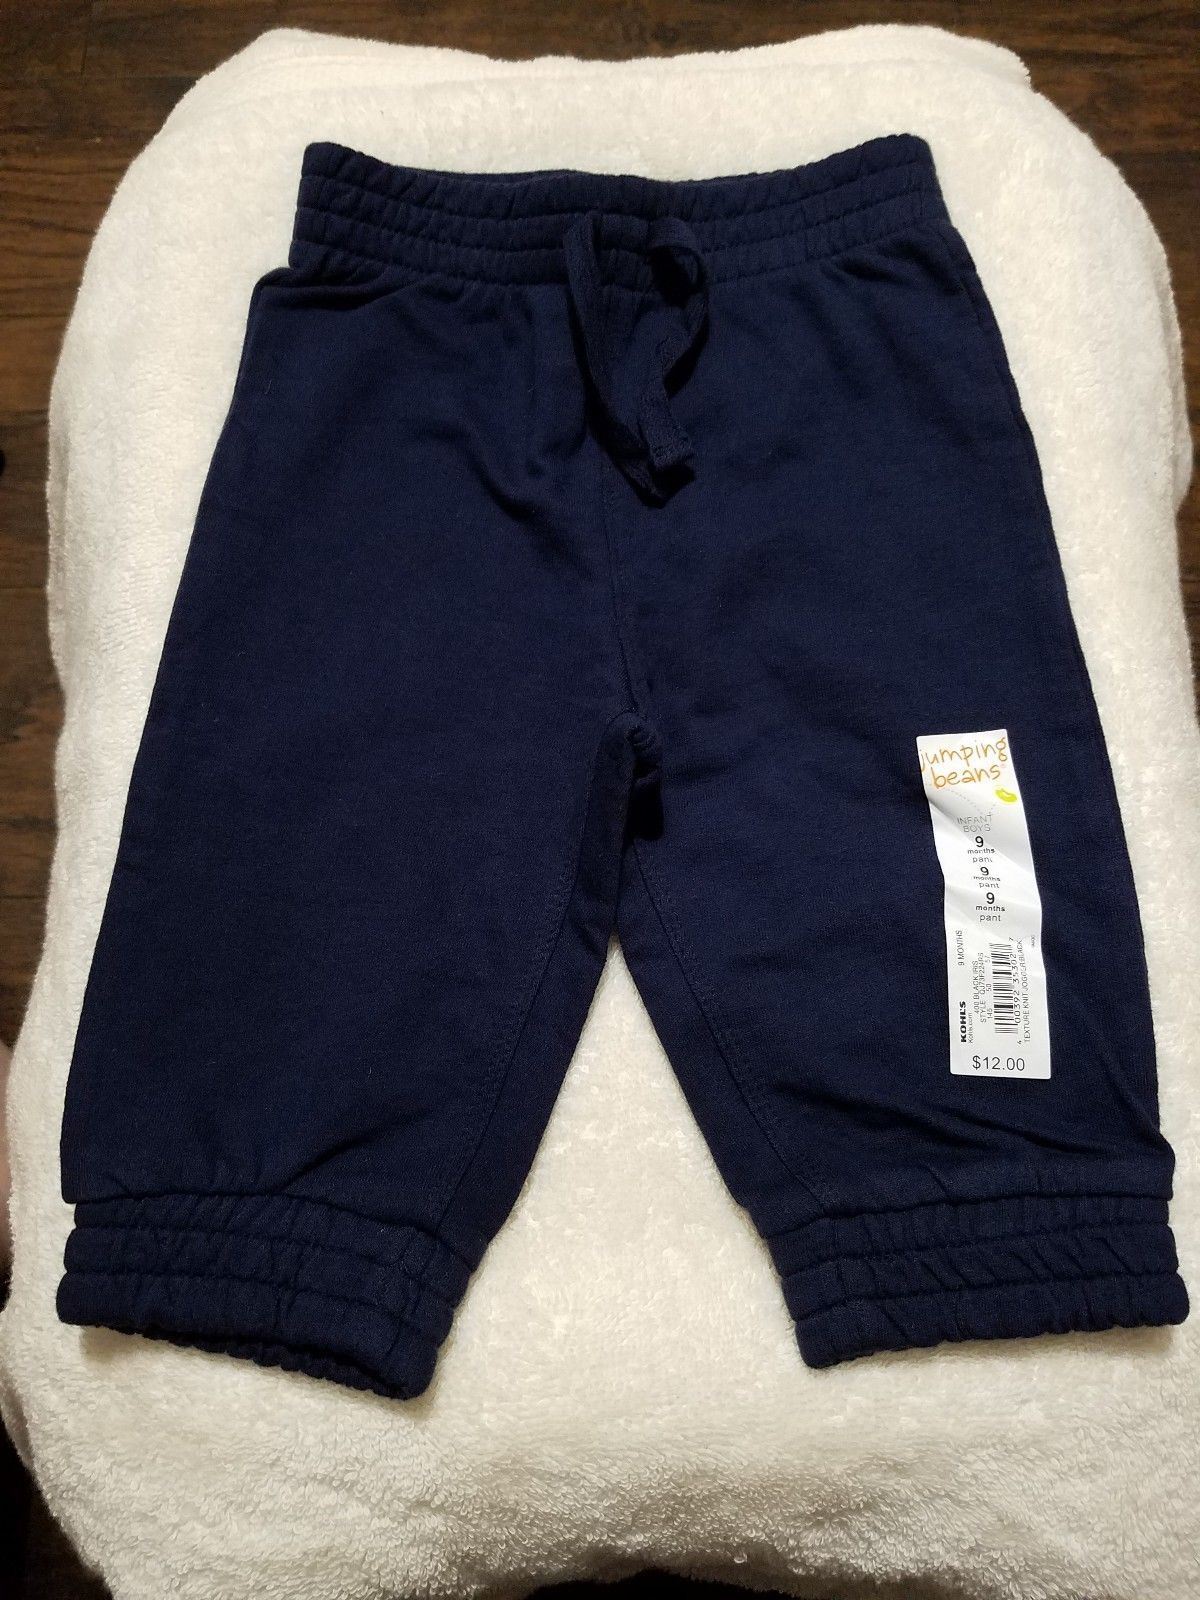 f0fa16ec Jumping Beans Infant Boys 9 Months 100% and 50 similar items